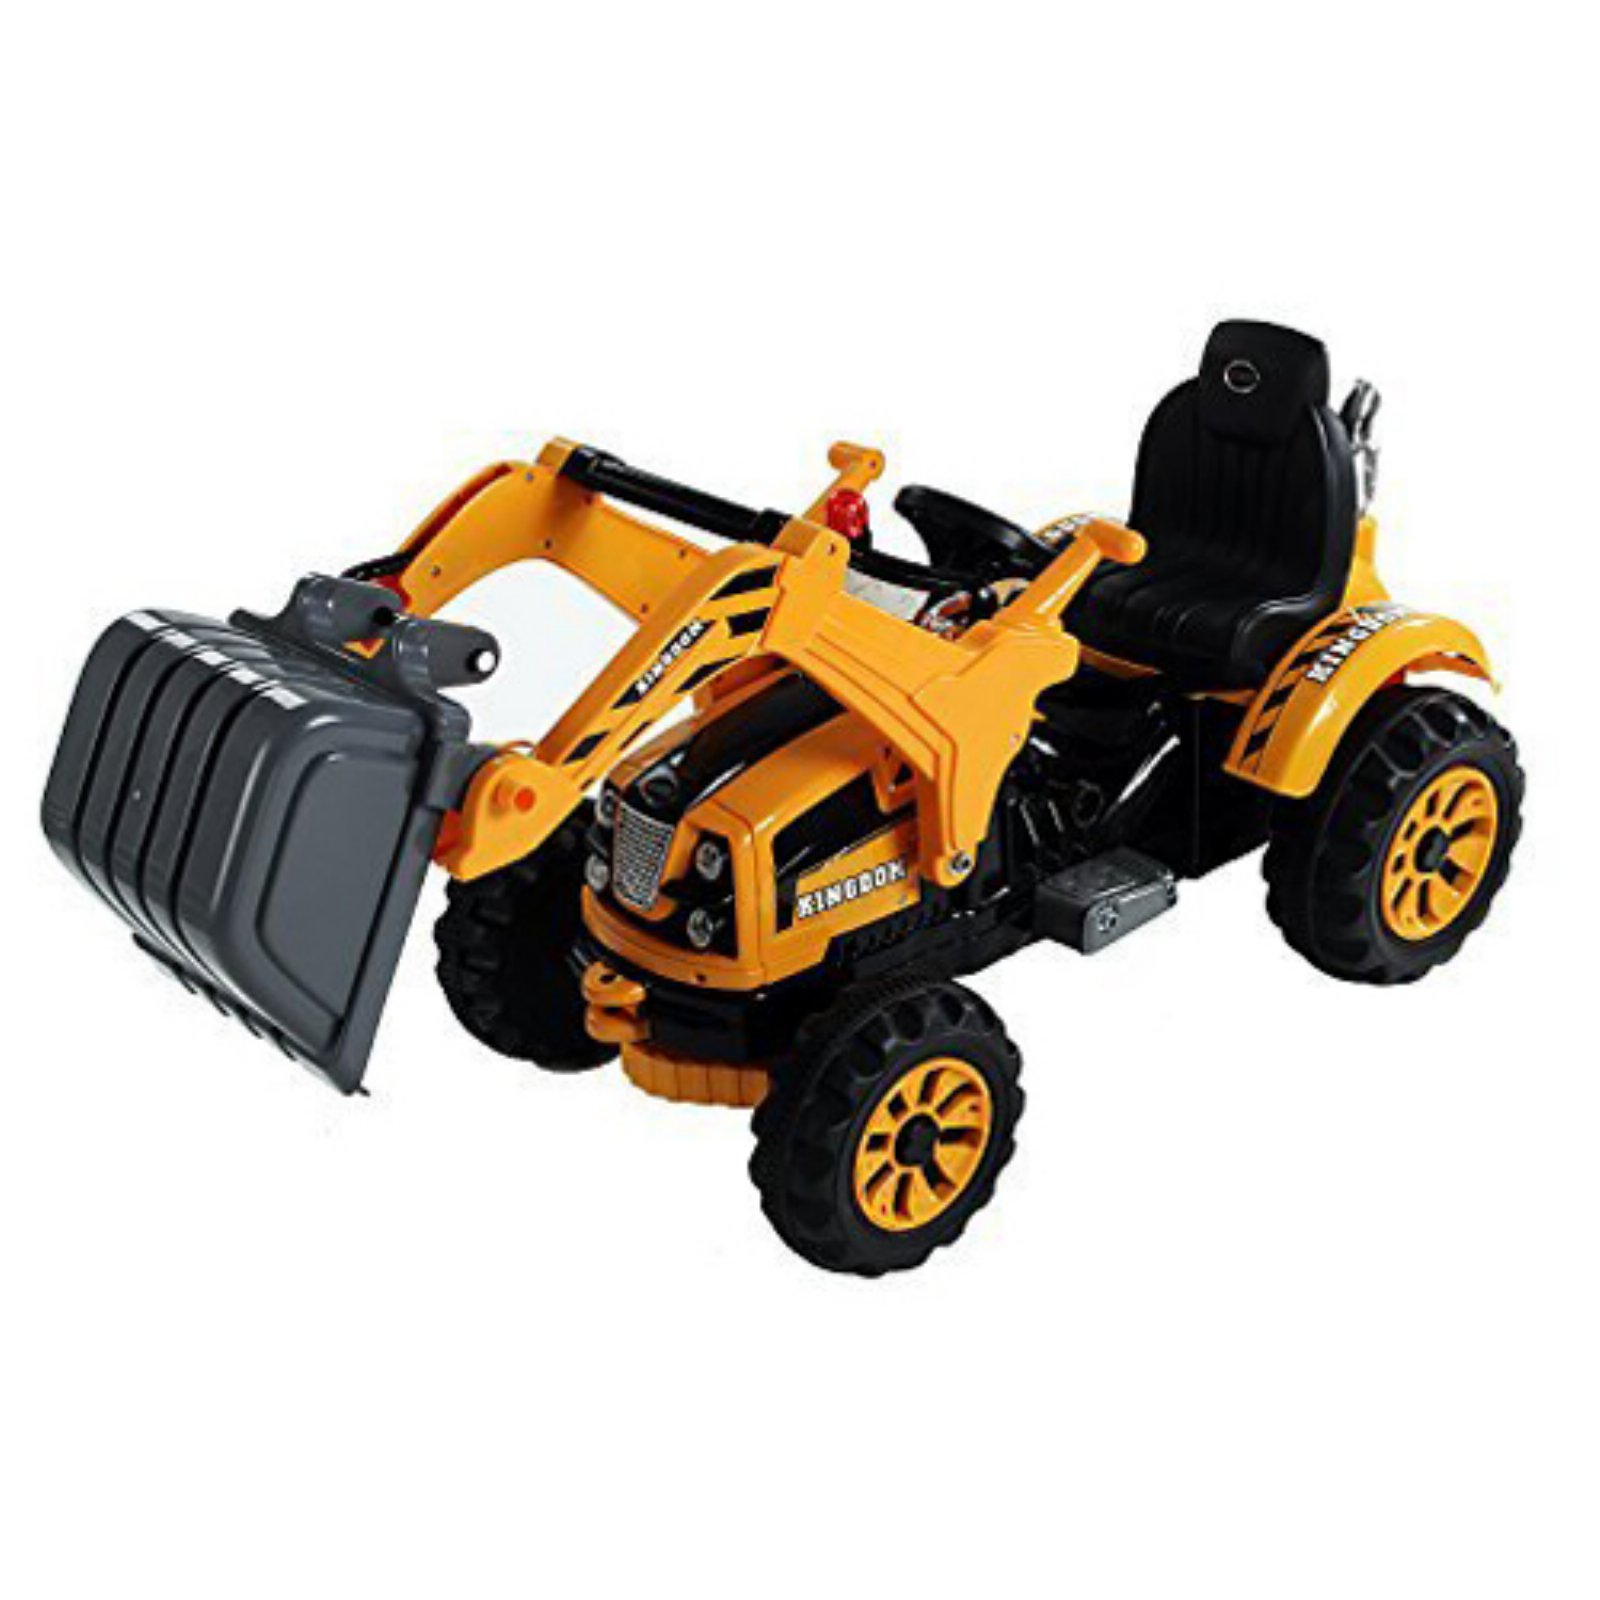 Aosom 6V Kids Ride On Toy Digger Excavator Construction Tractor by Aosom LLC